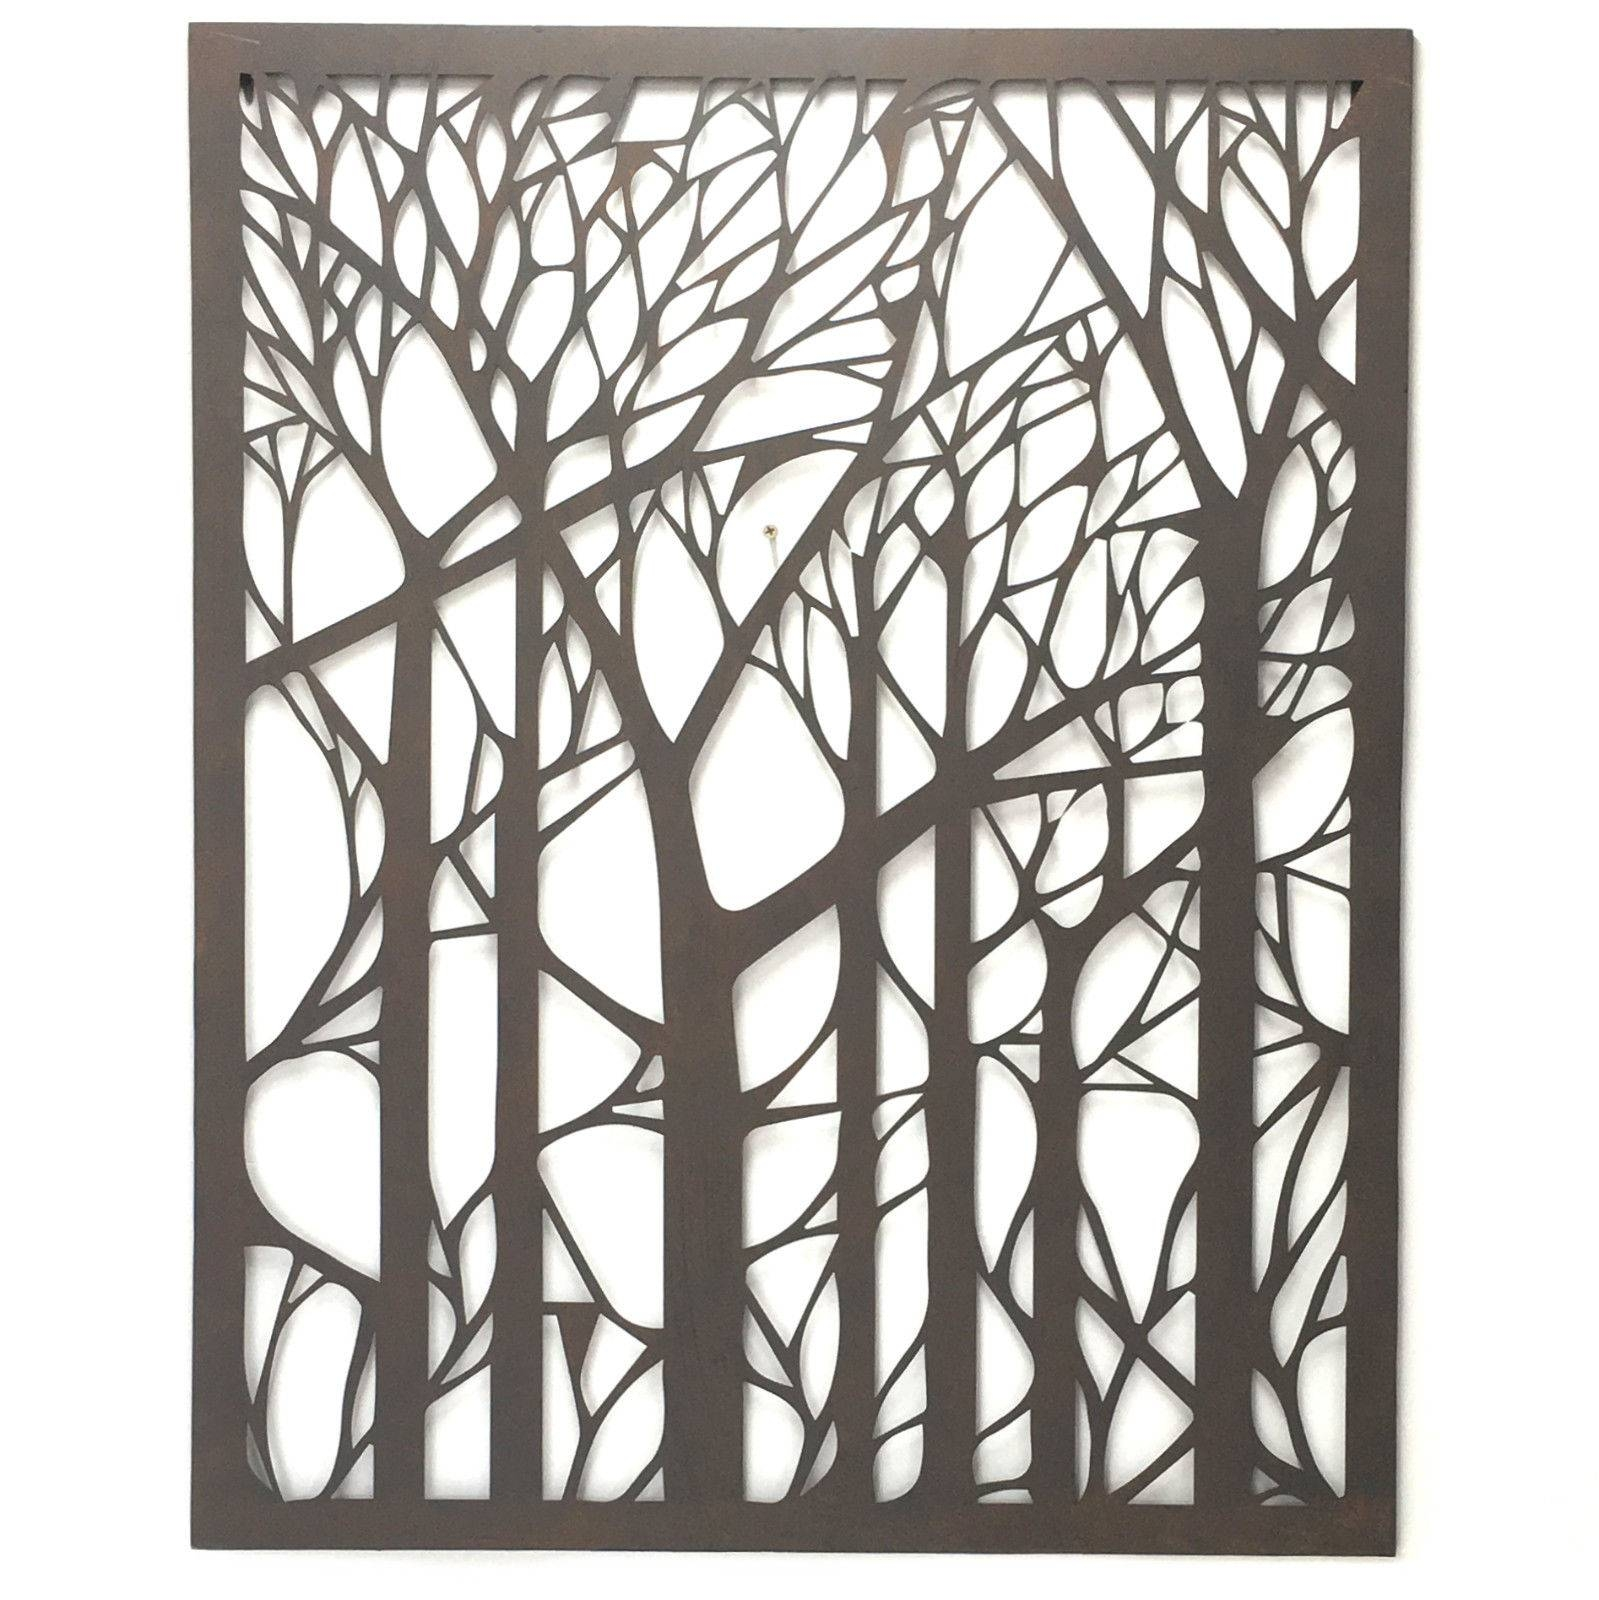 Wall Art Designs: Outdoor Wall Art Metal Tree Metal Wall Art In Current Large Metal Wall Art (View 17 of 20)